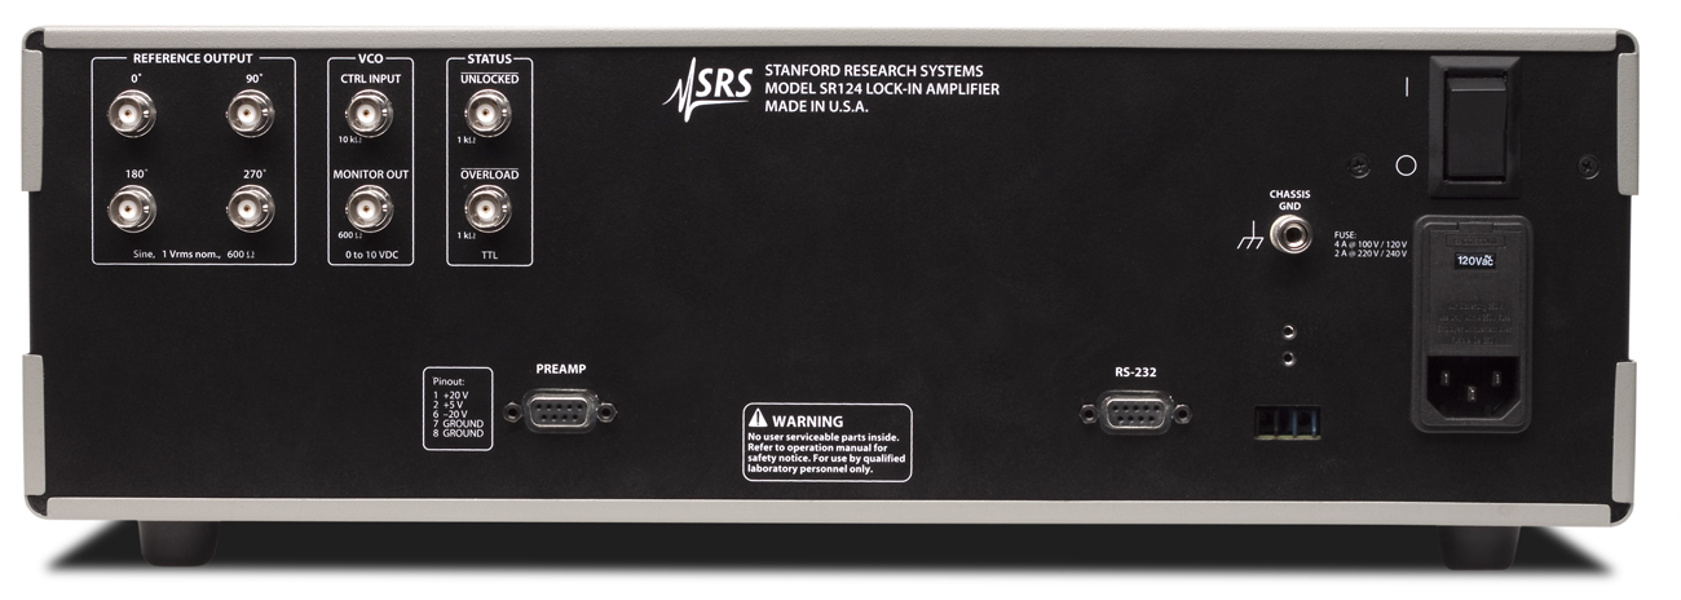 SRS SR124 — Analog lock-in amplifier